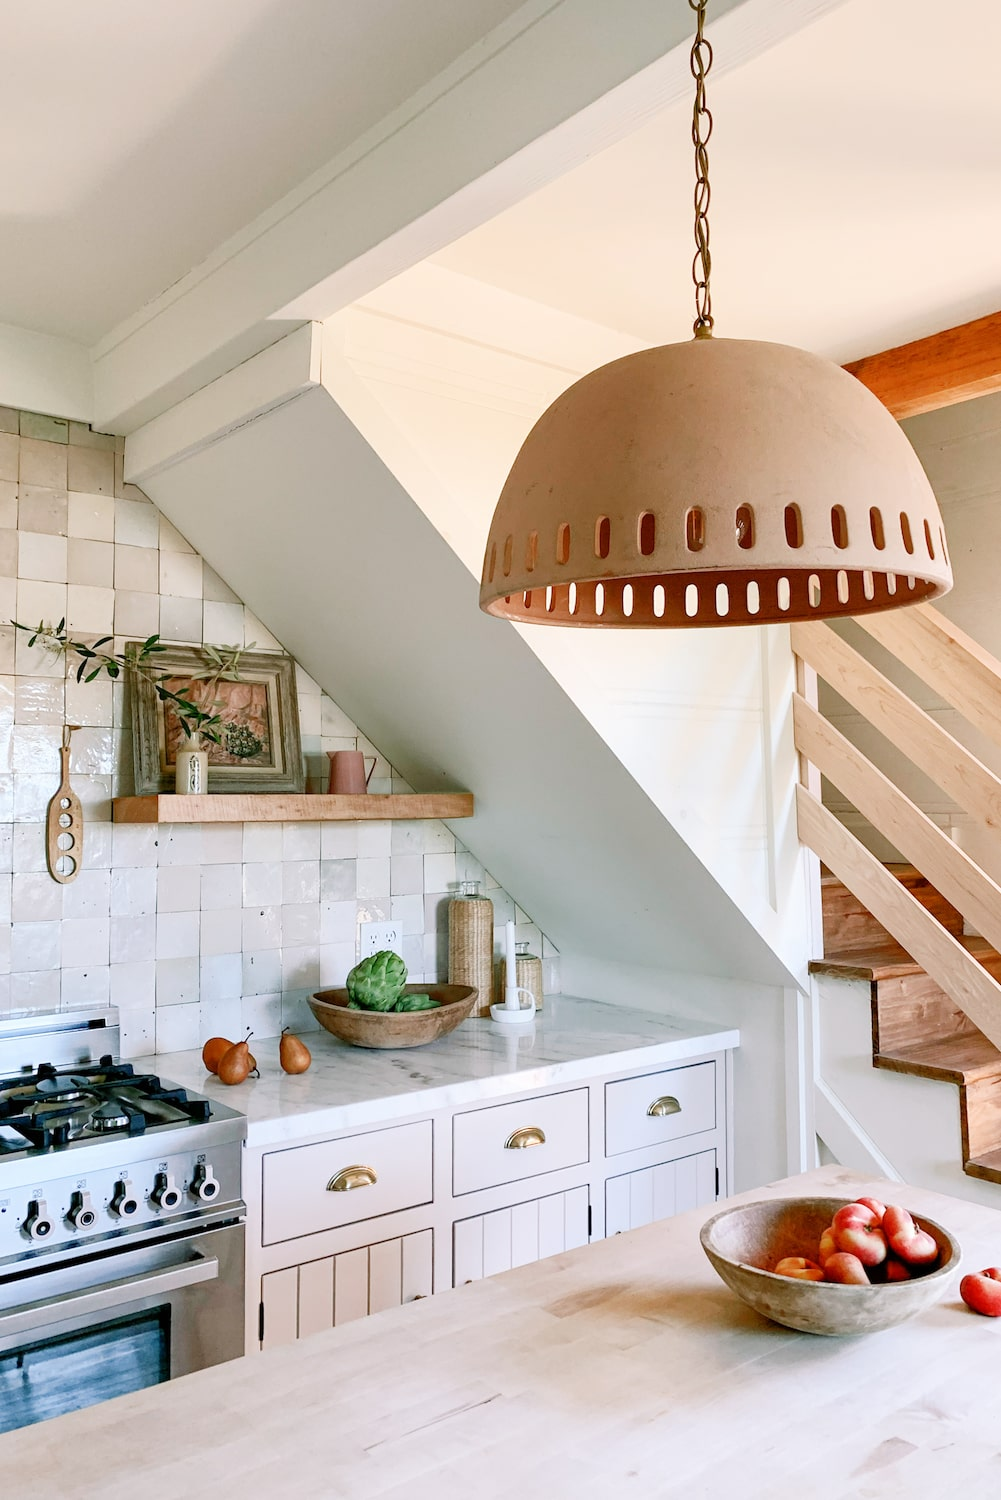 Rustic kitchen bench and lighting with tiled splash back